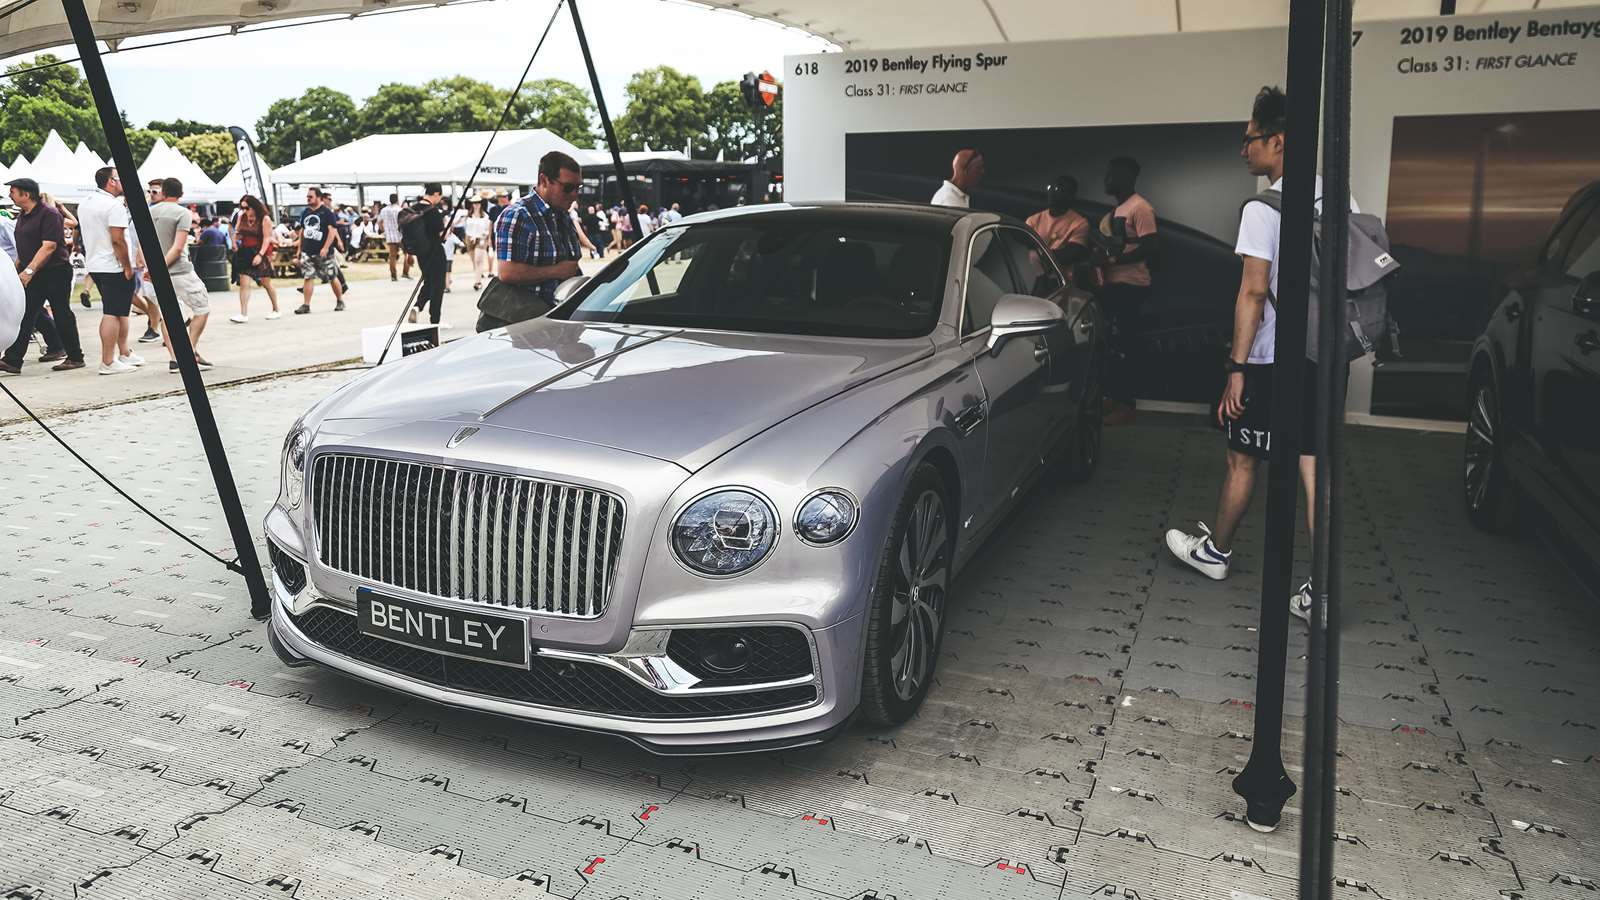 New Bentley Flying Spur Debuts At Fos